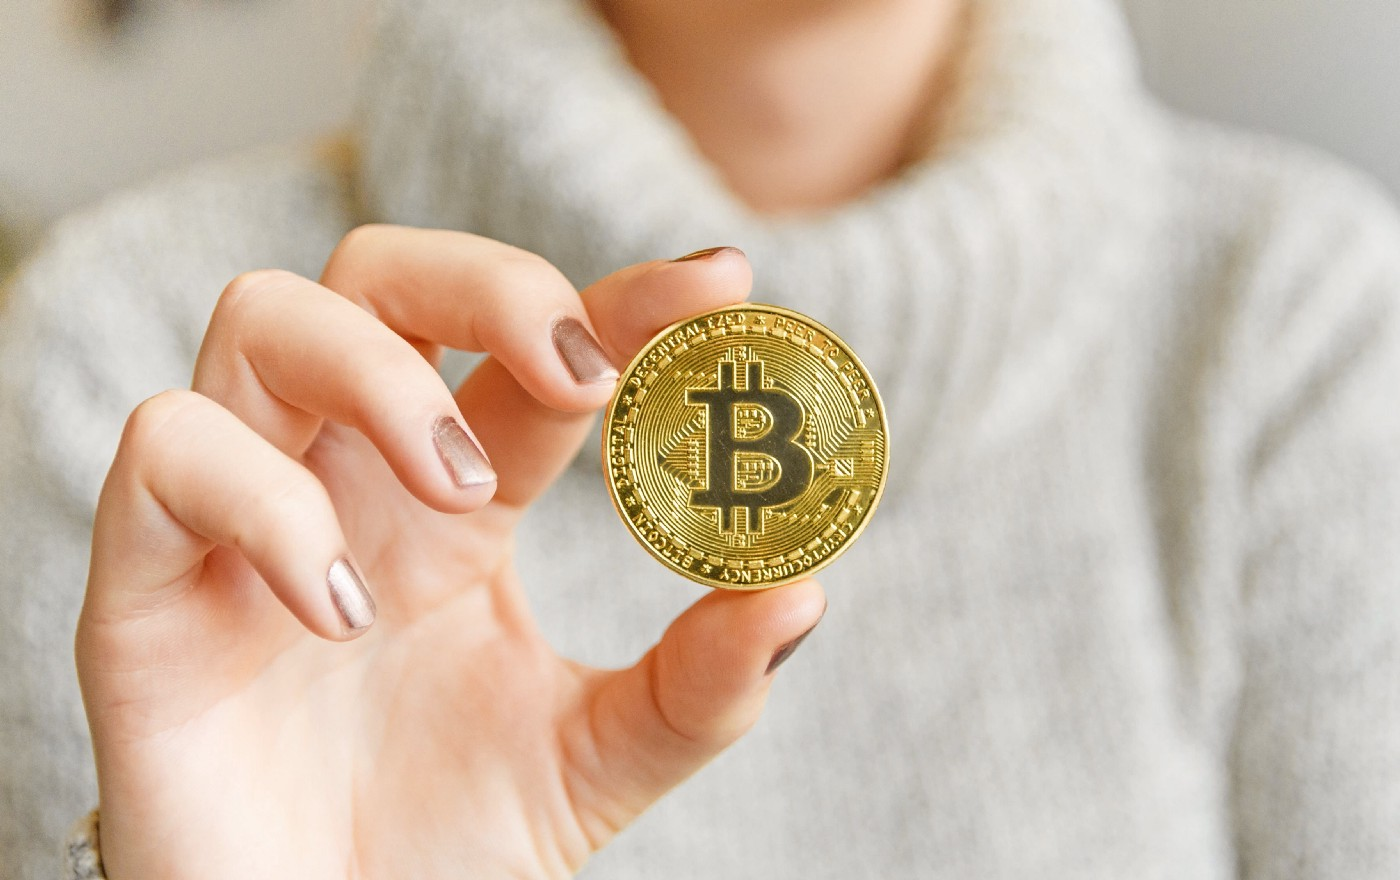 A person in a turtle neck holding a gold bitcoin.